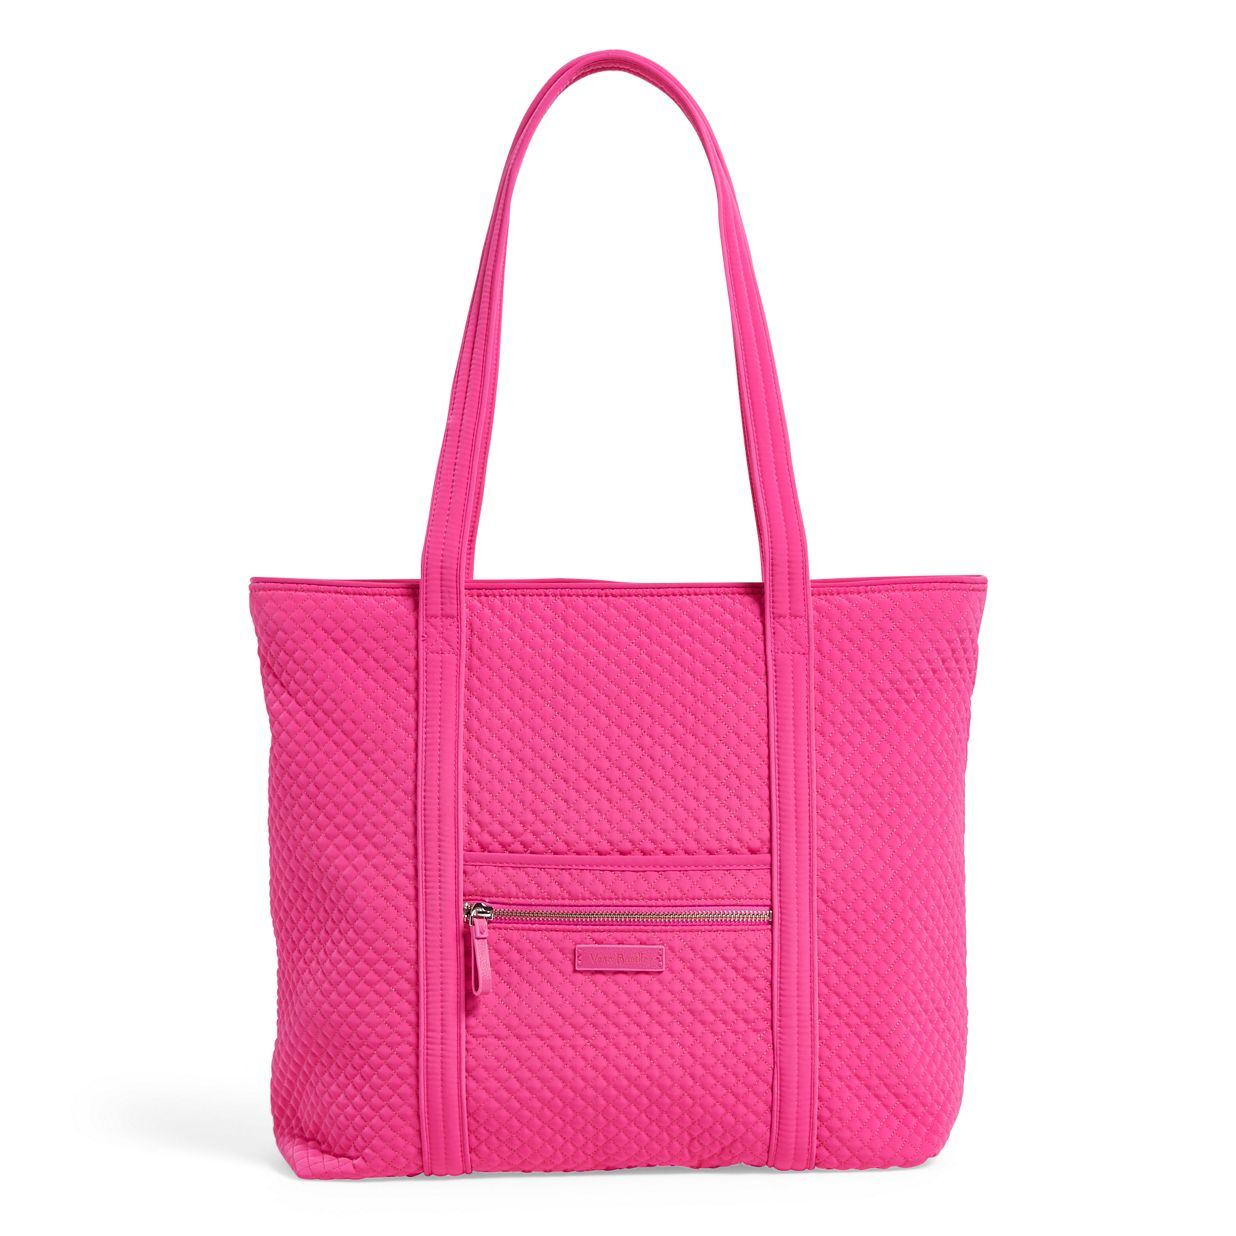 614b5916a Image of Iconic Vera Tote in Rose Petal ...